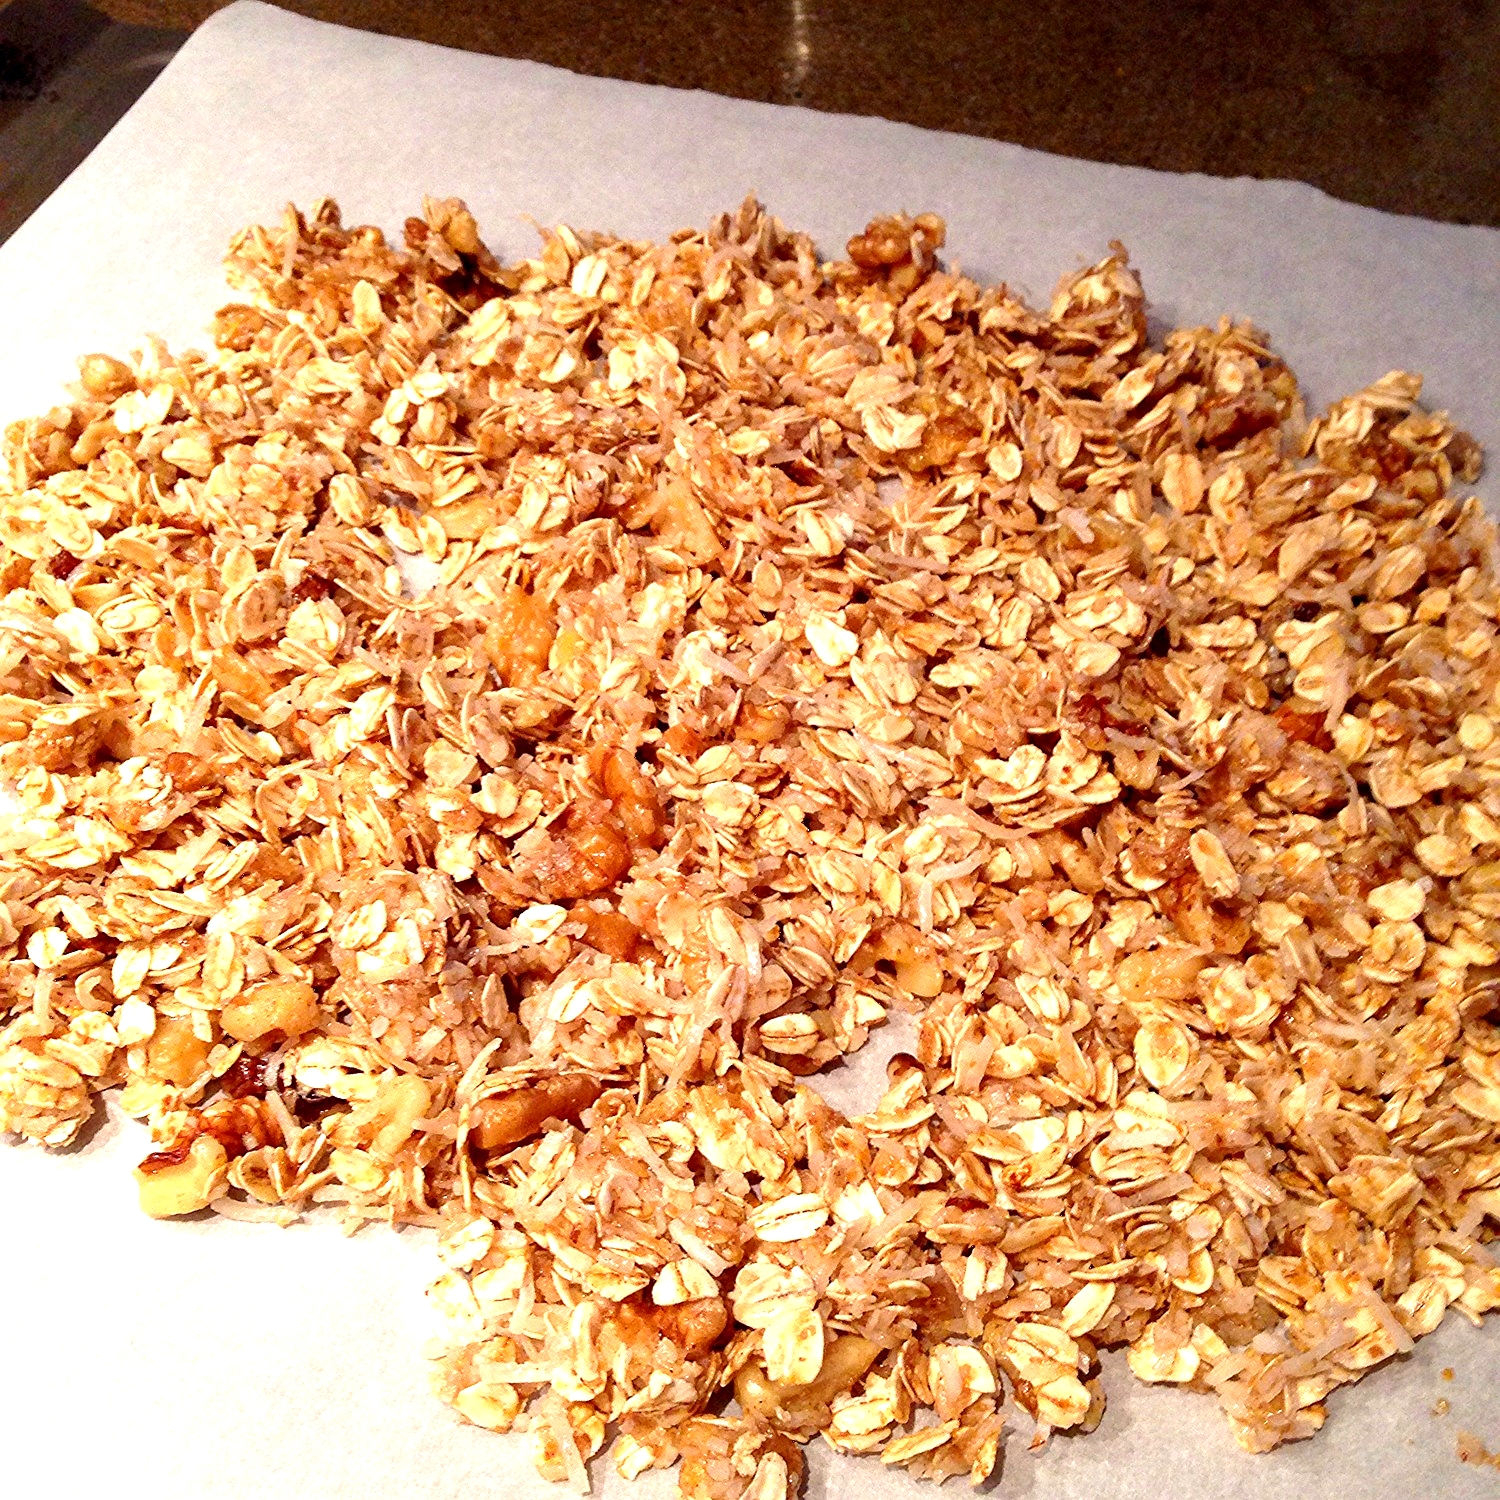 Make sure you're not pressing too firmly.  Once baked, you can crack up the granola into chunks.